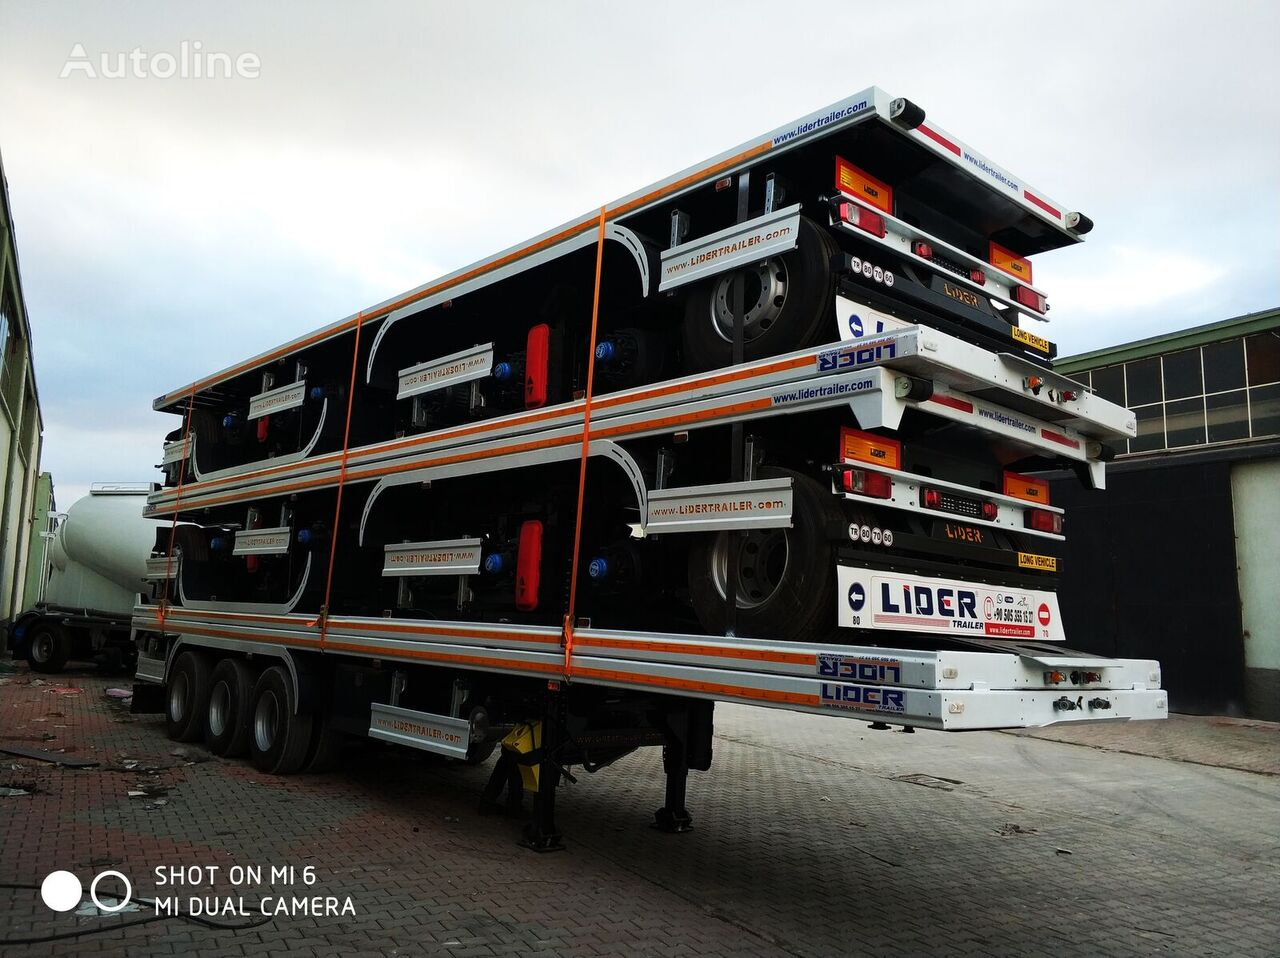 new LIDER NEW 2021 MODELS YEAR (MANUFACTURER COMPANY LIDER TRAILER container chassis semi-trailer